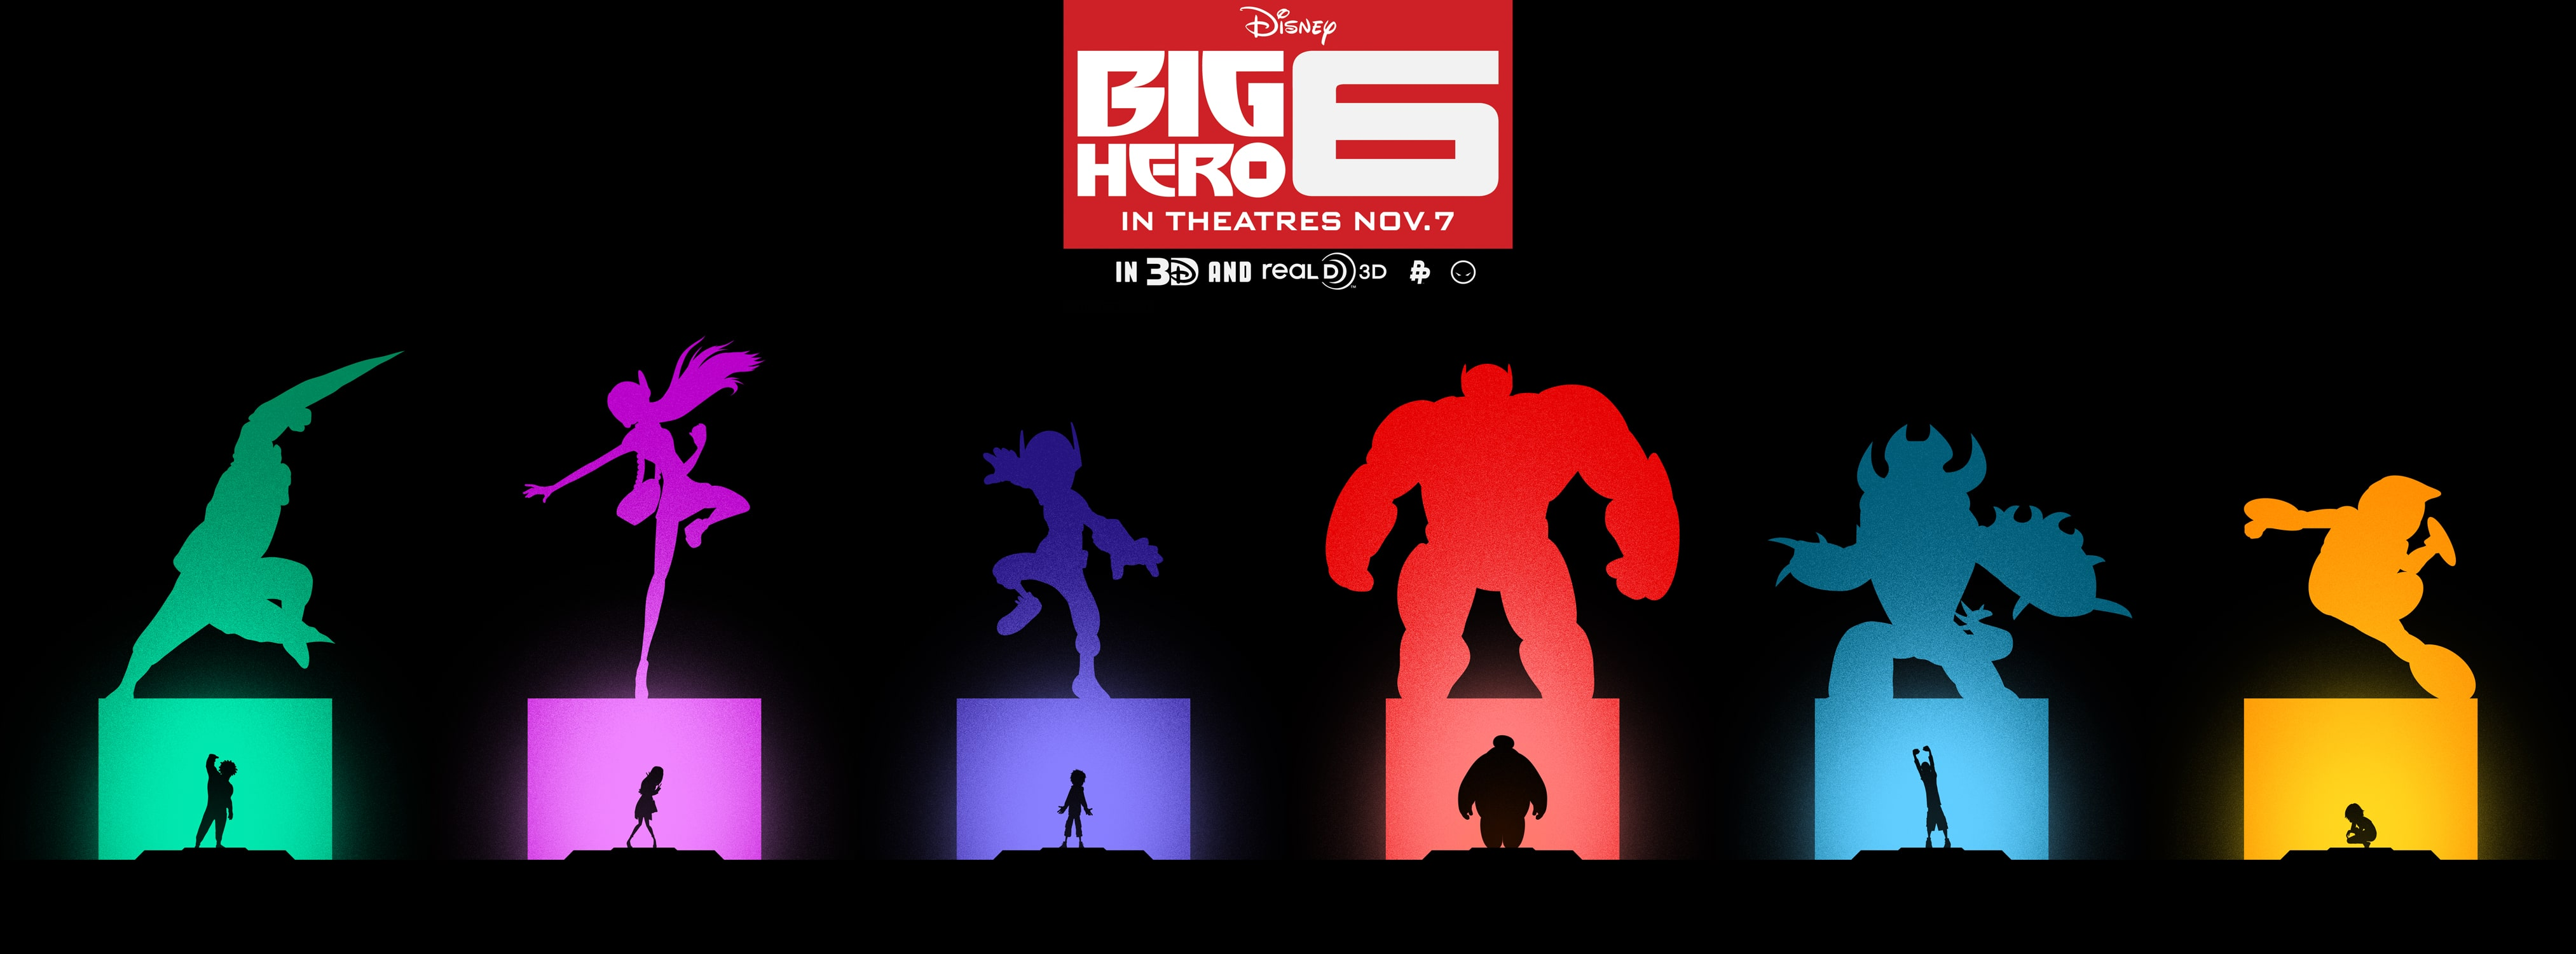 Big Hero 6 HD pics